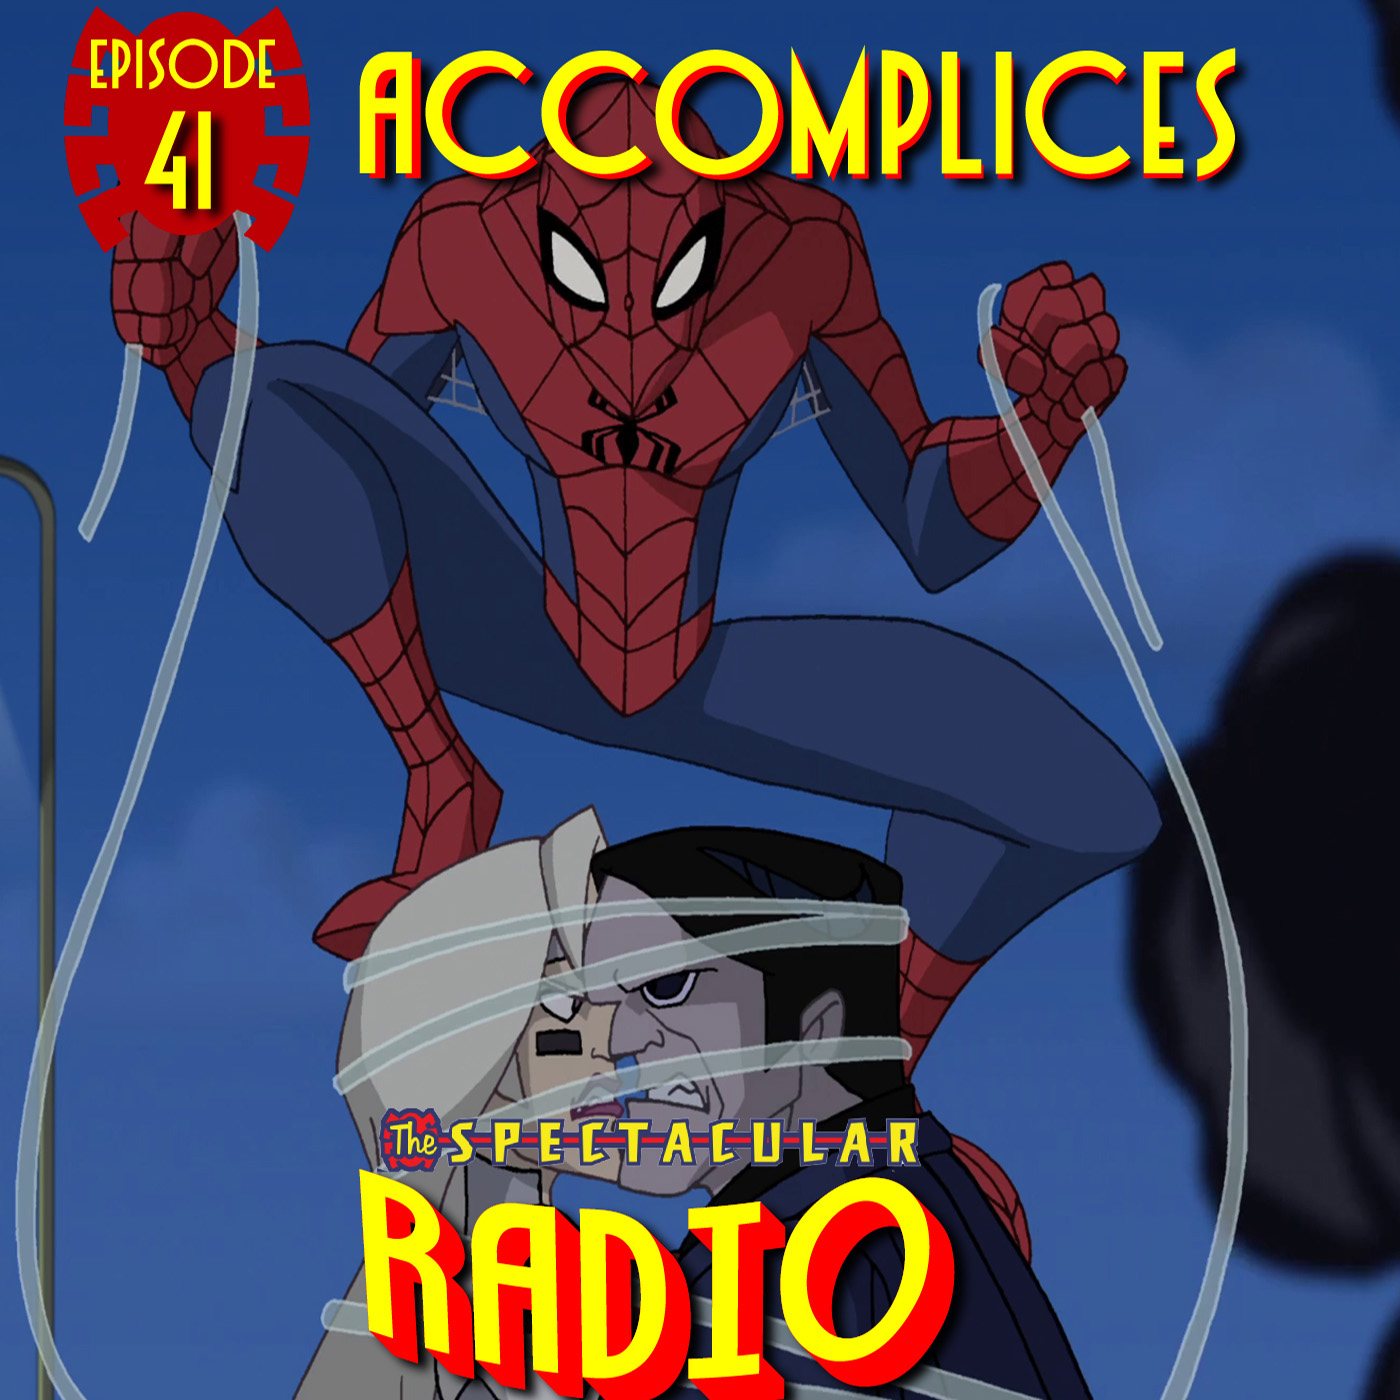 """Spectacular Radio Episode 41: """"Accomplices"""" With Greg Weisman"""